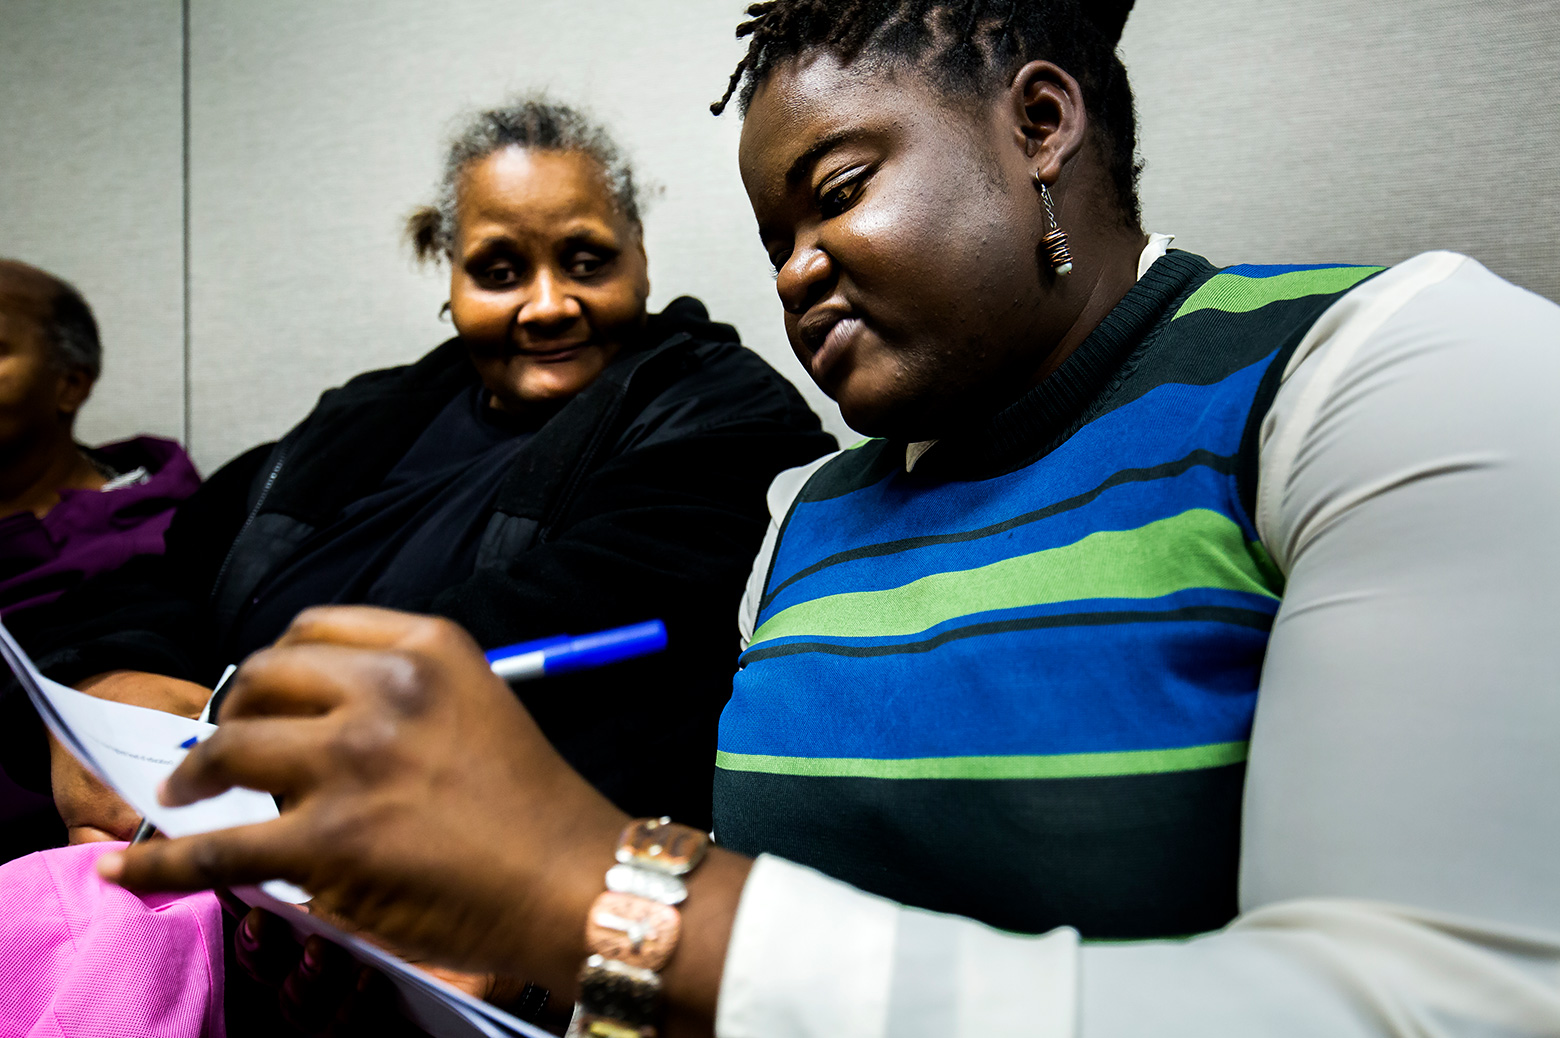 Assistant Professor Tierra Bills writing on a paper and sitting with a Benton Harbor resident.